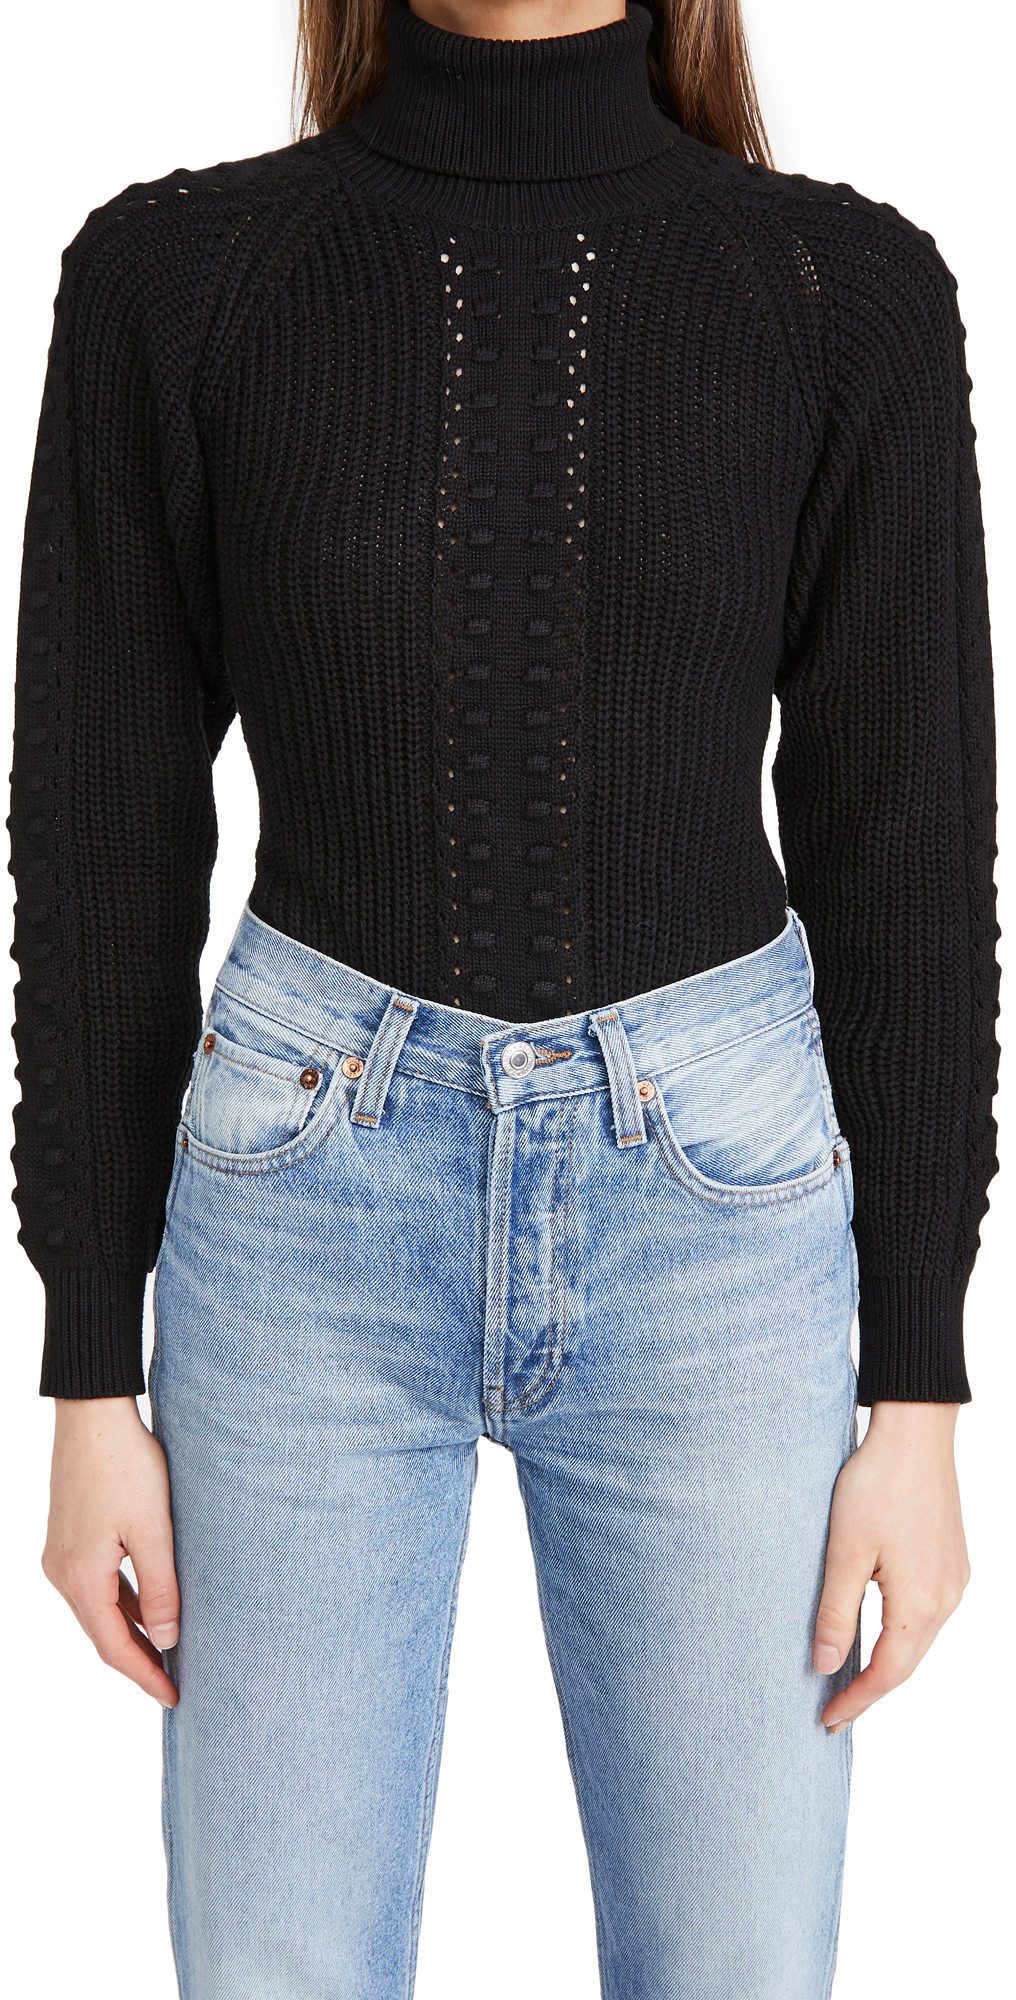 Only Hearts Three Times A Lady Turtleneck Bodysuit